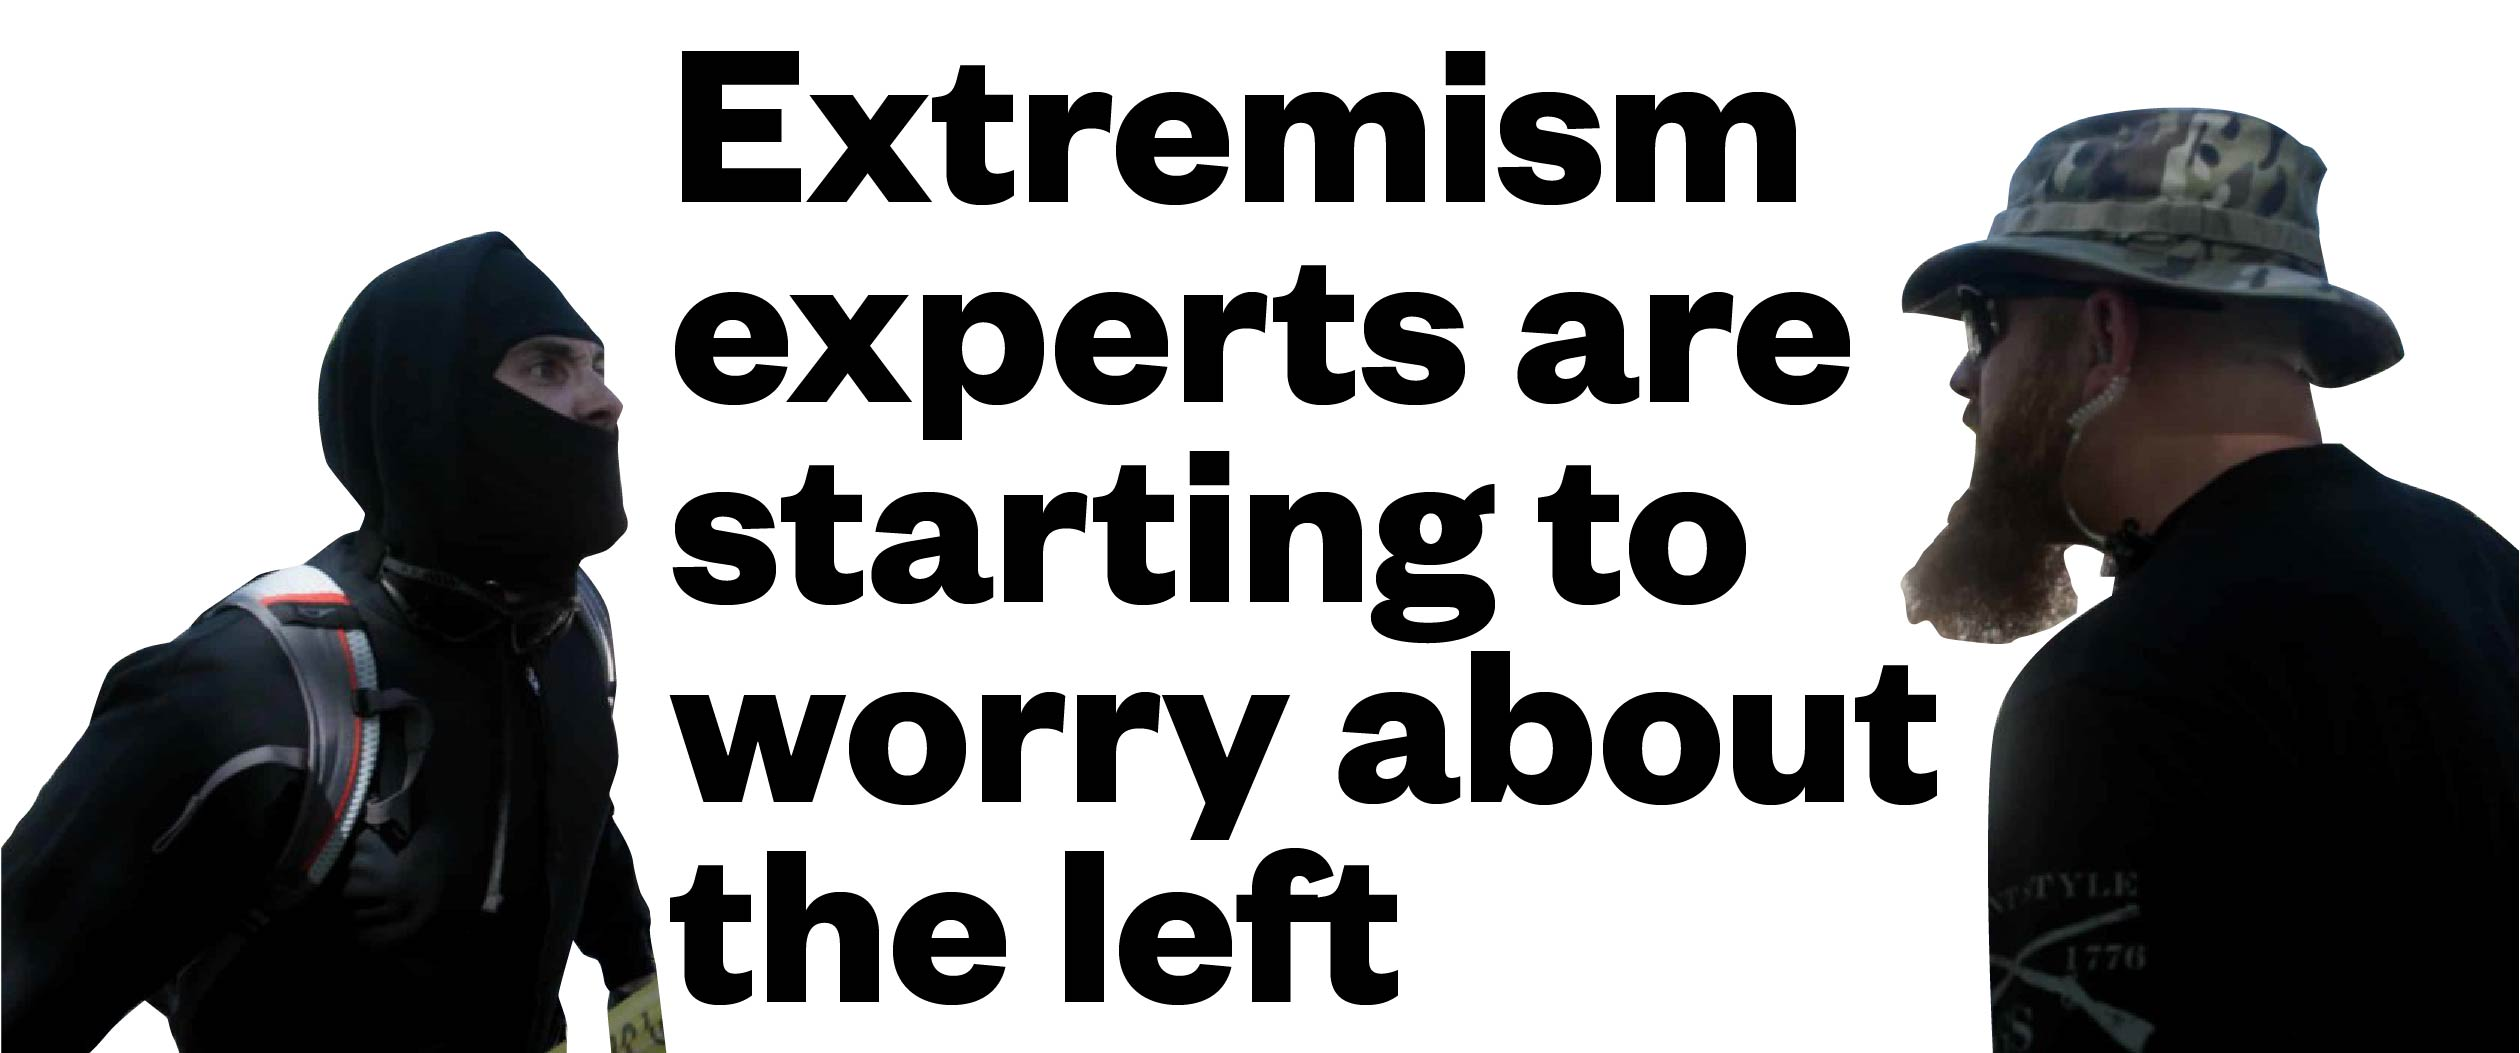 extremism experts are starting to worry about the left vice news